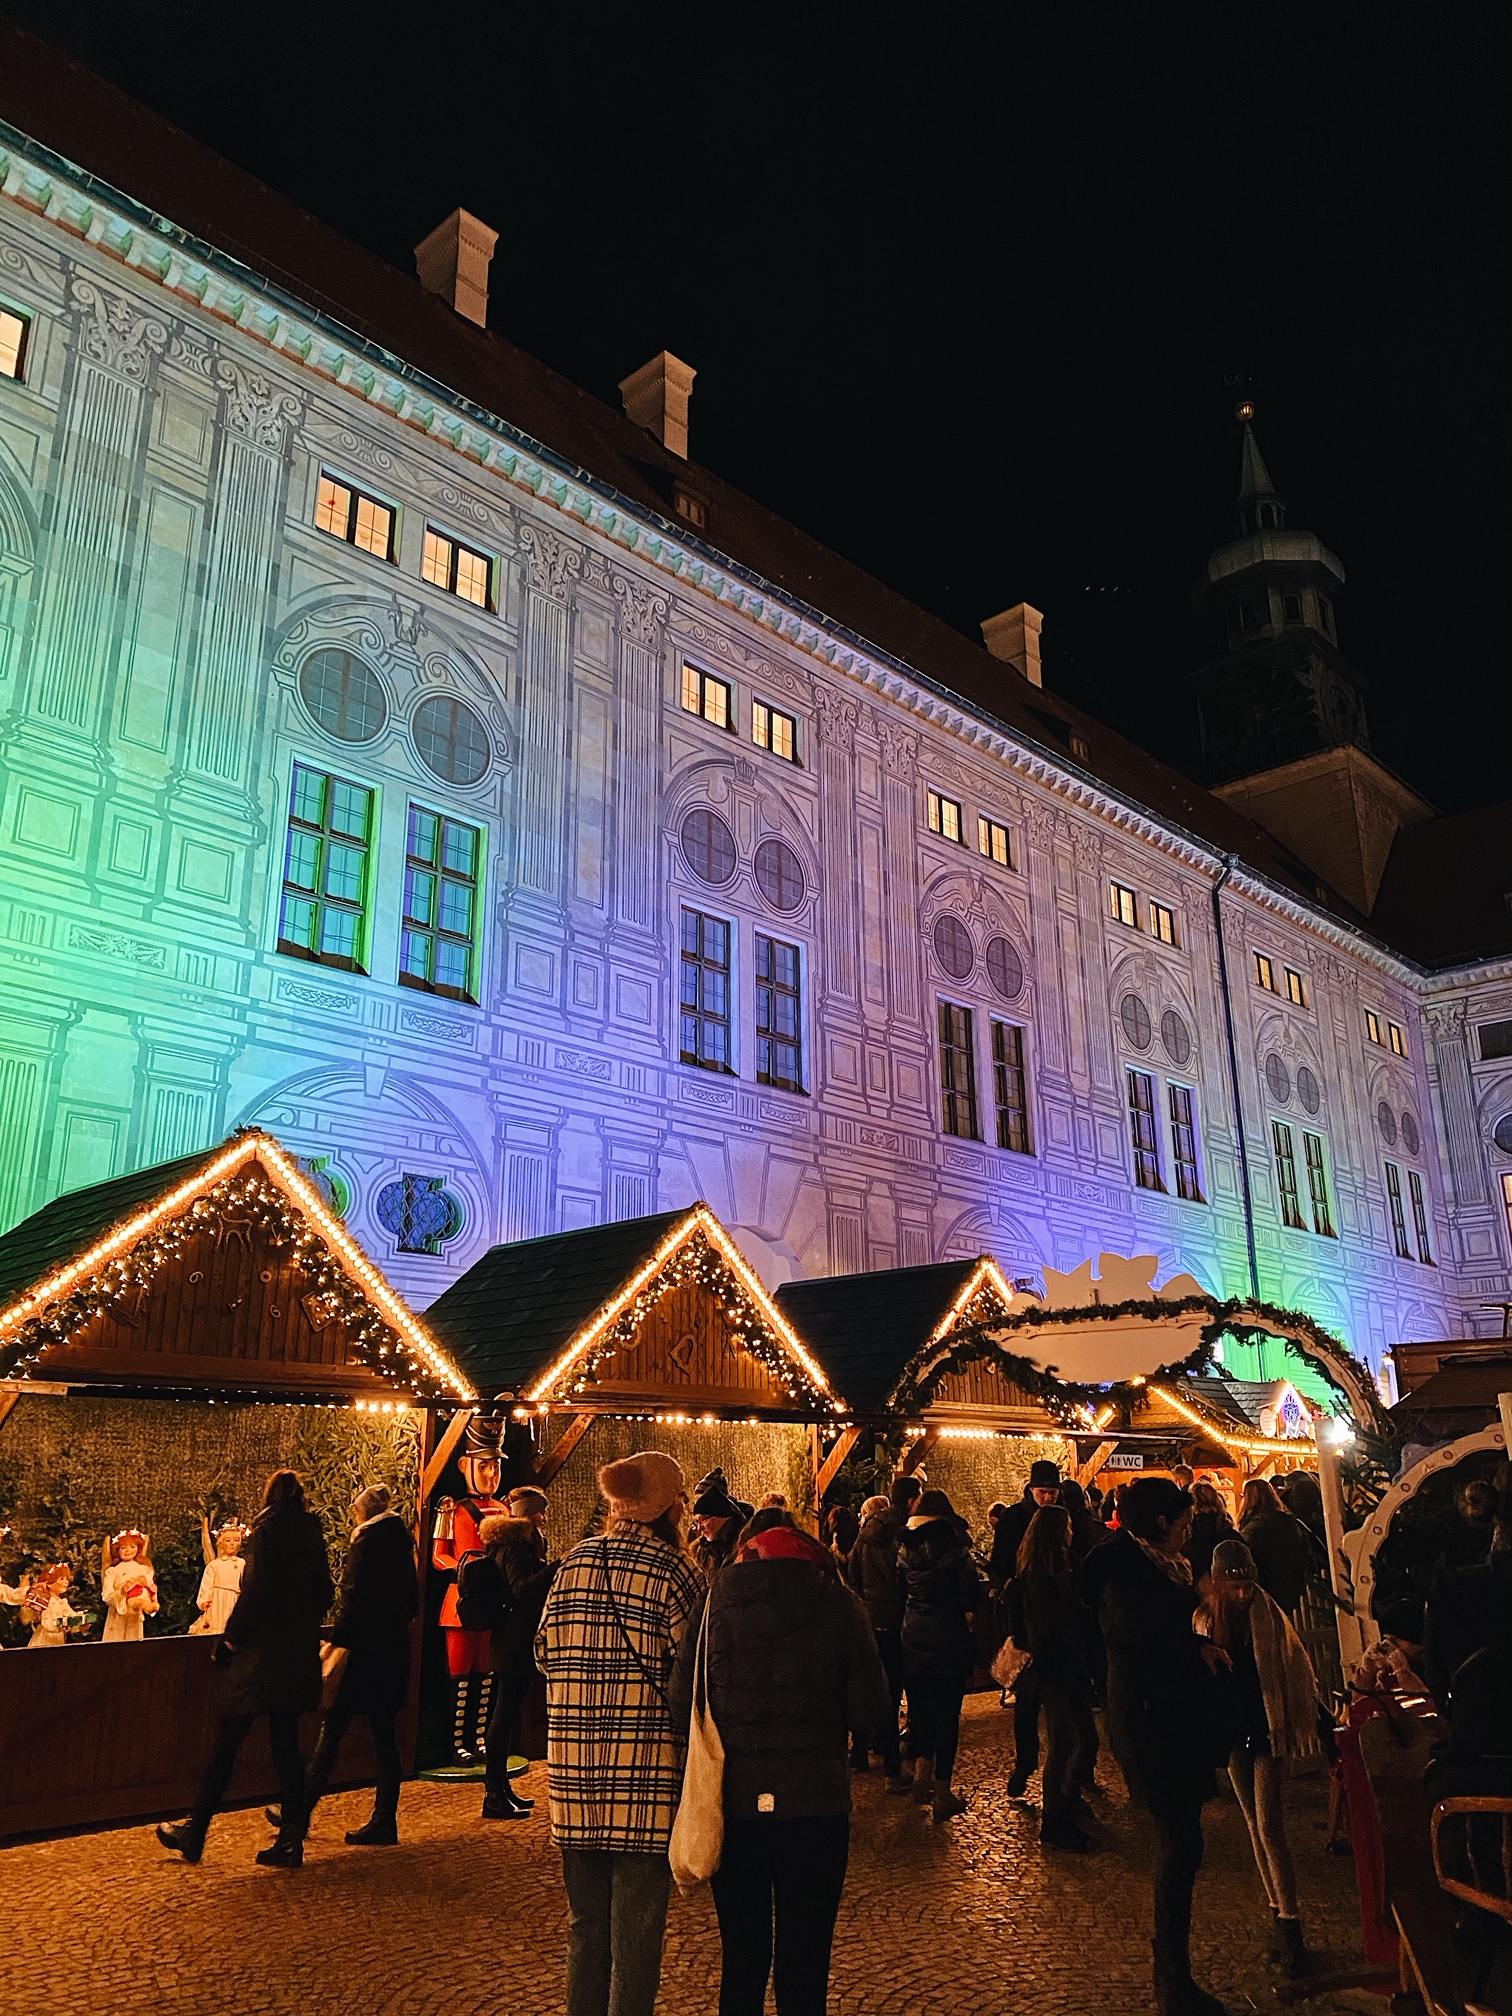 Munich Christmas Market // Emperor's Village at Munich Residenz